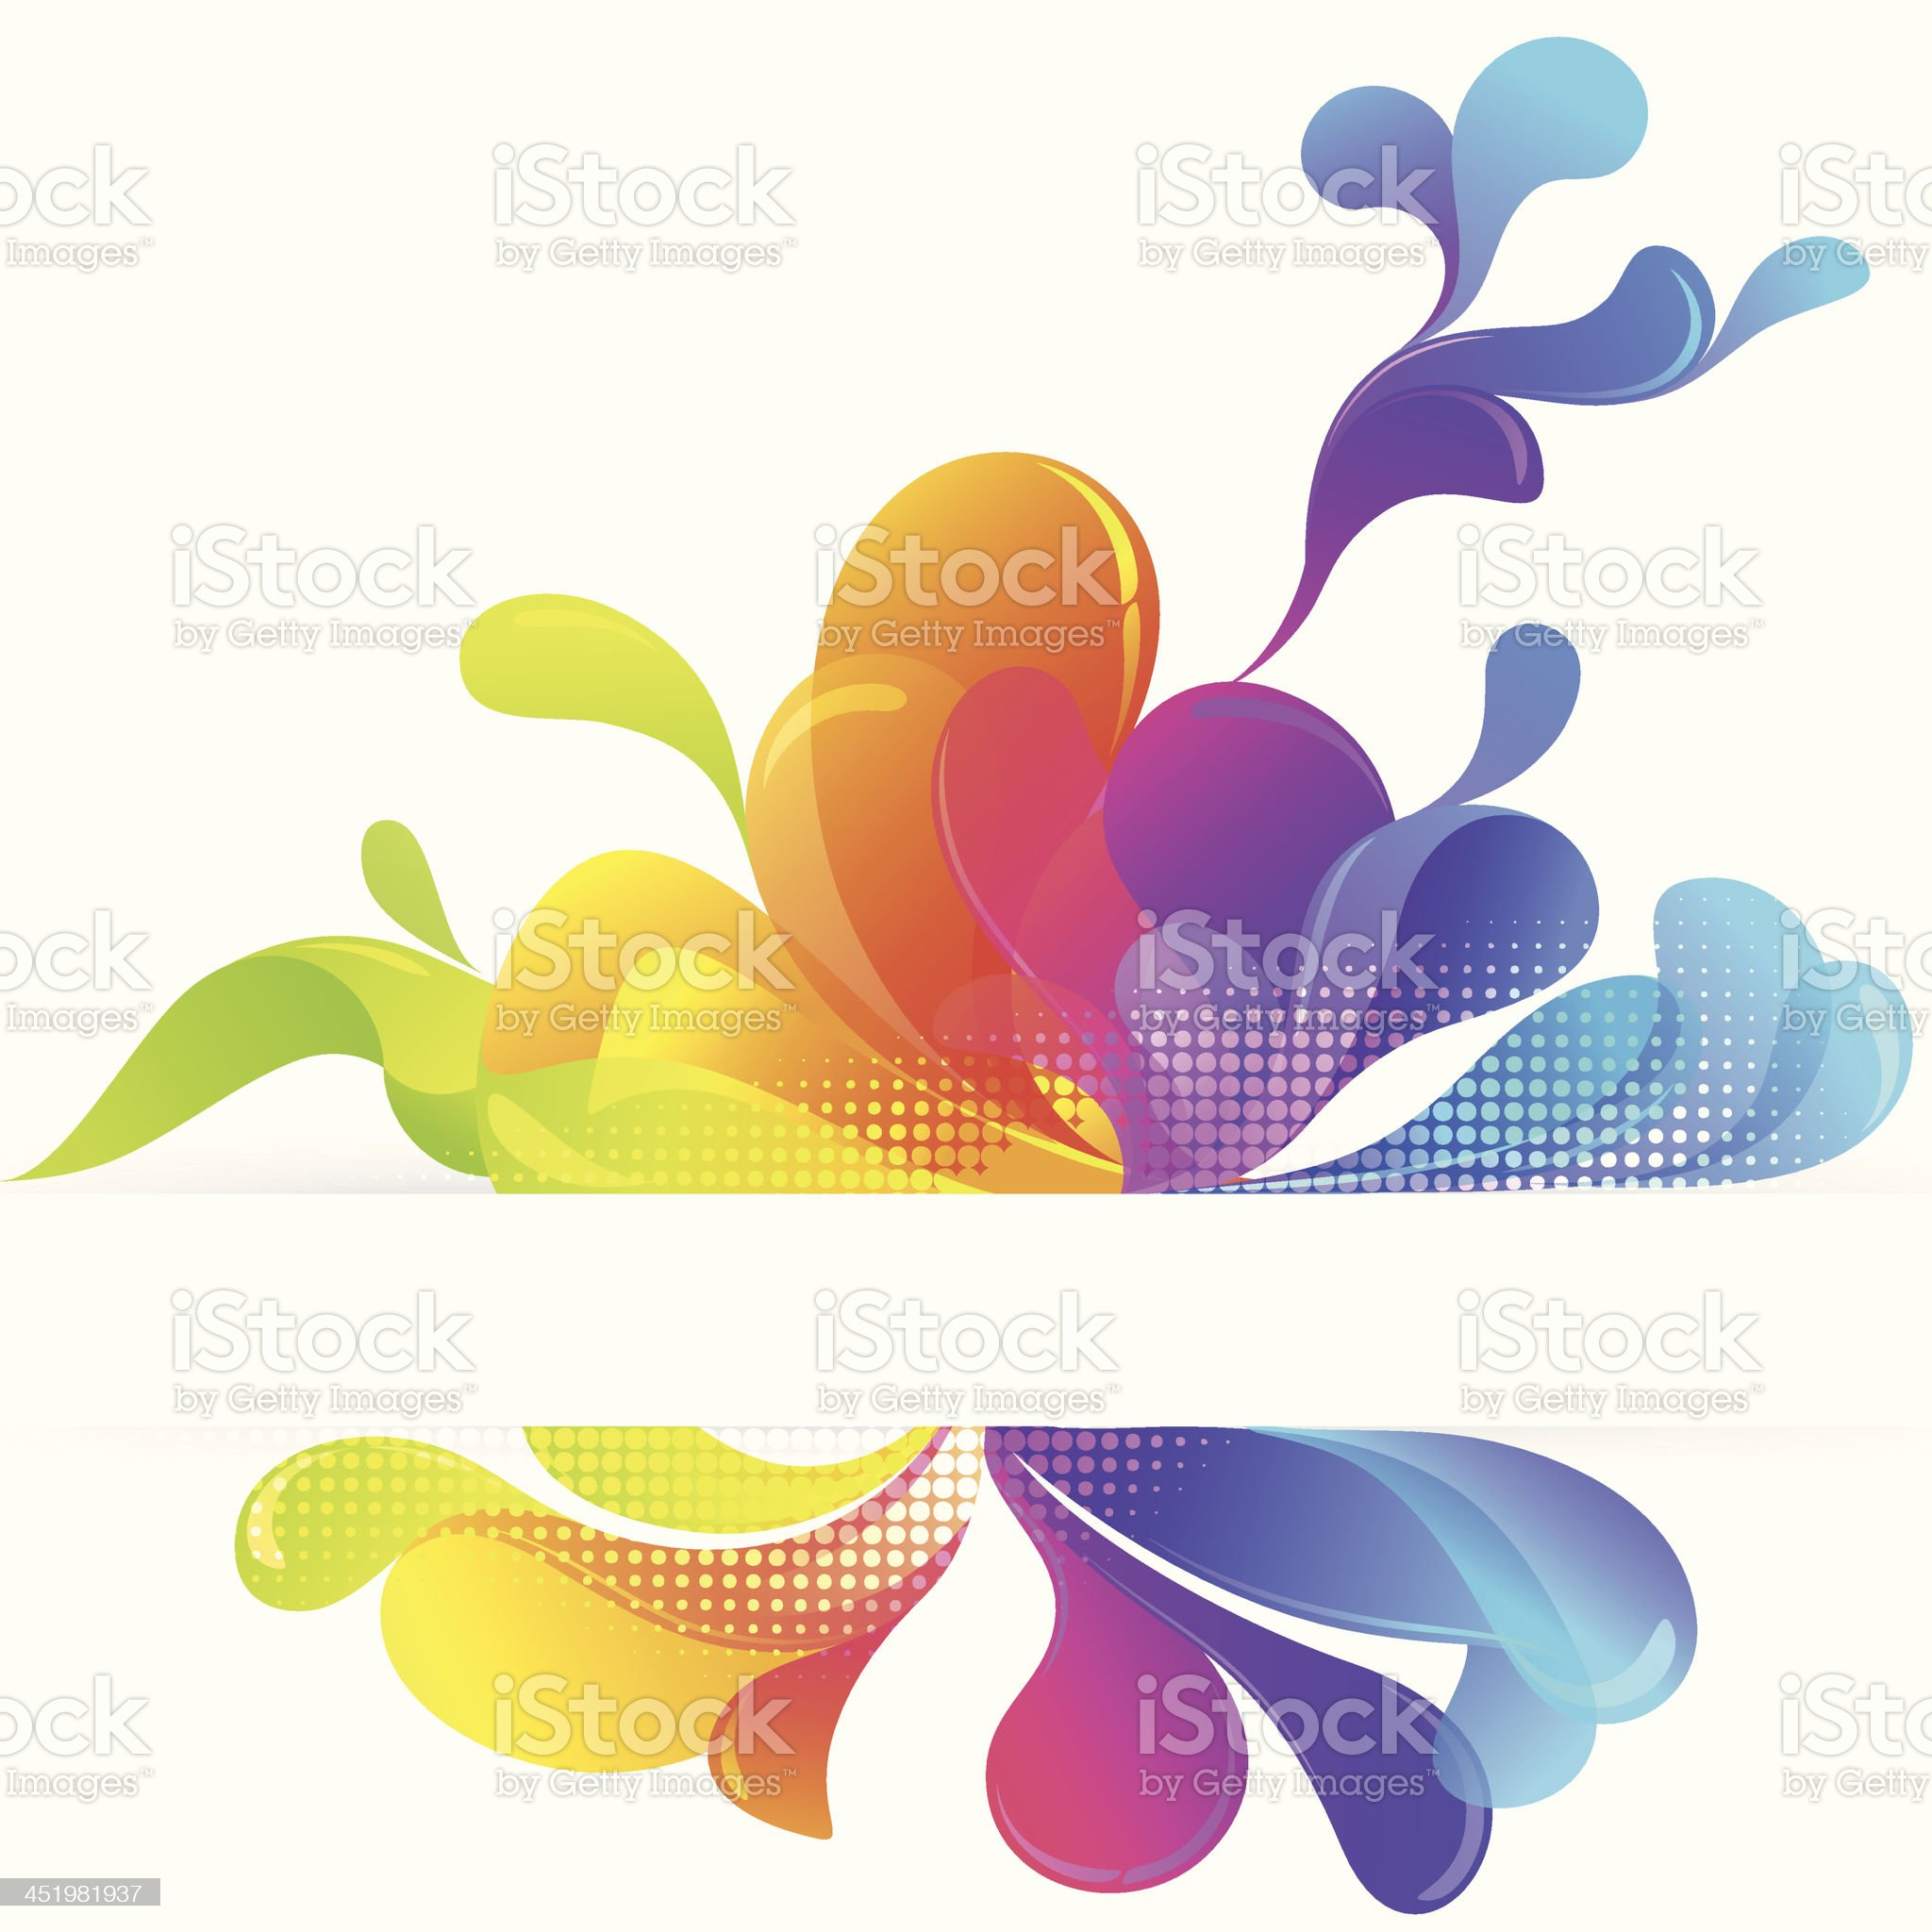 Abstract Varicolored Bubbles Background royalty-free stock vector art